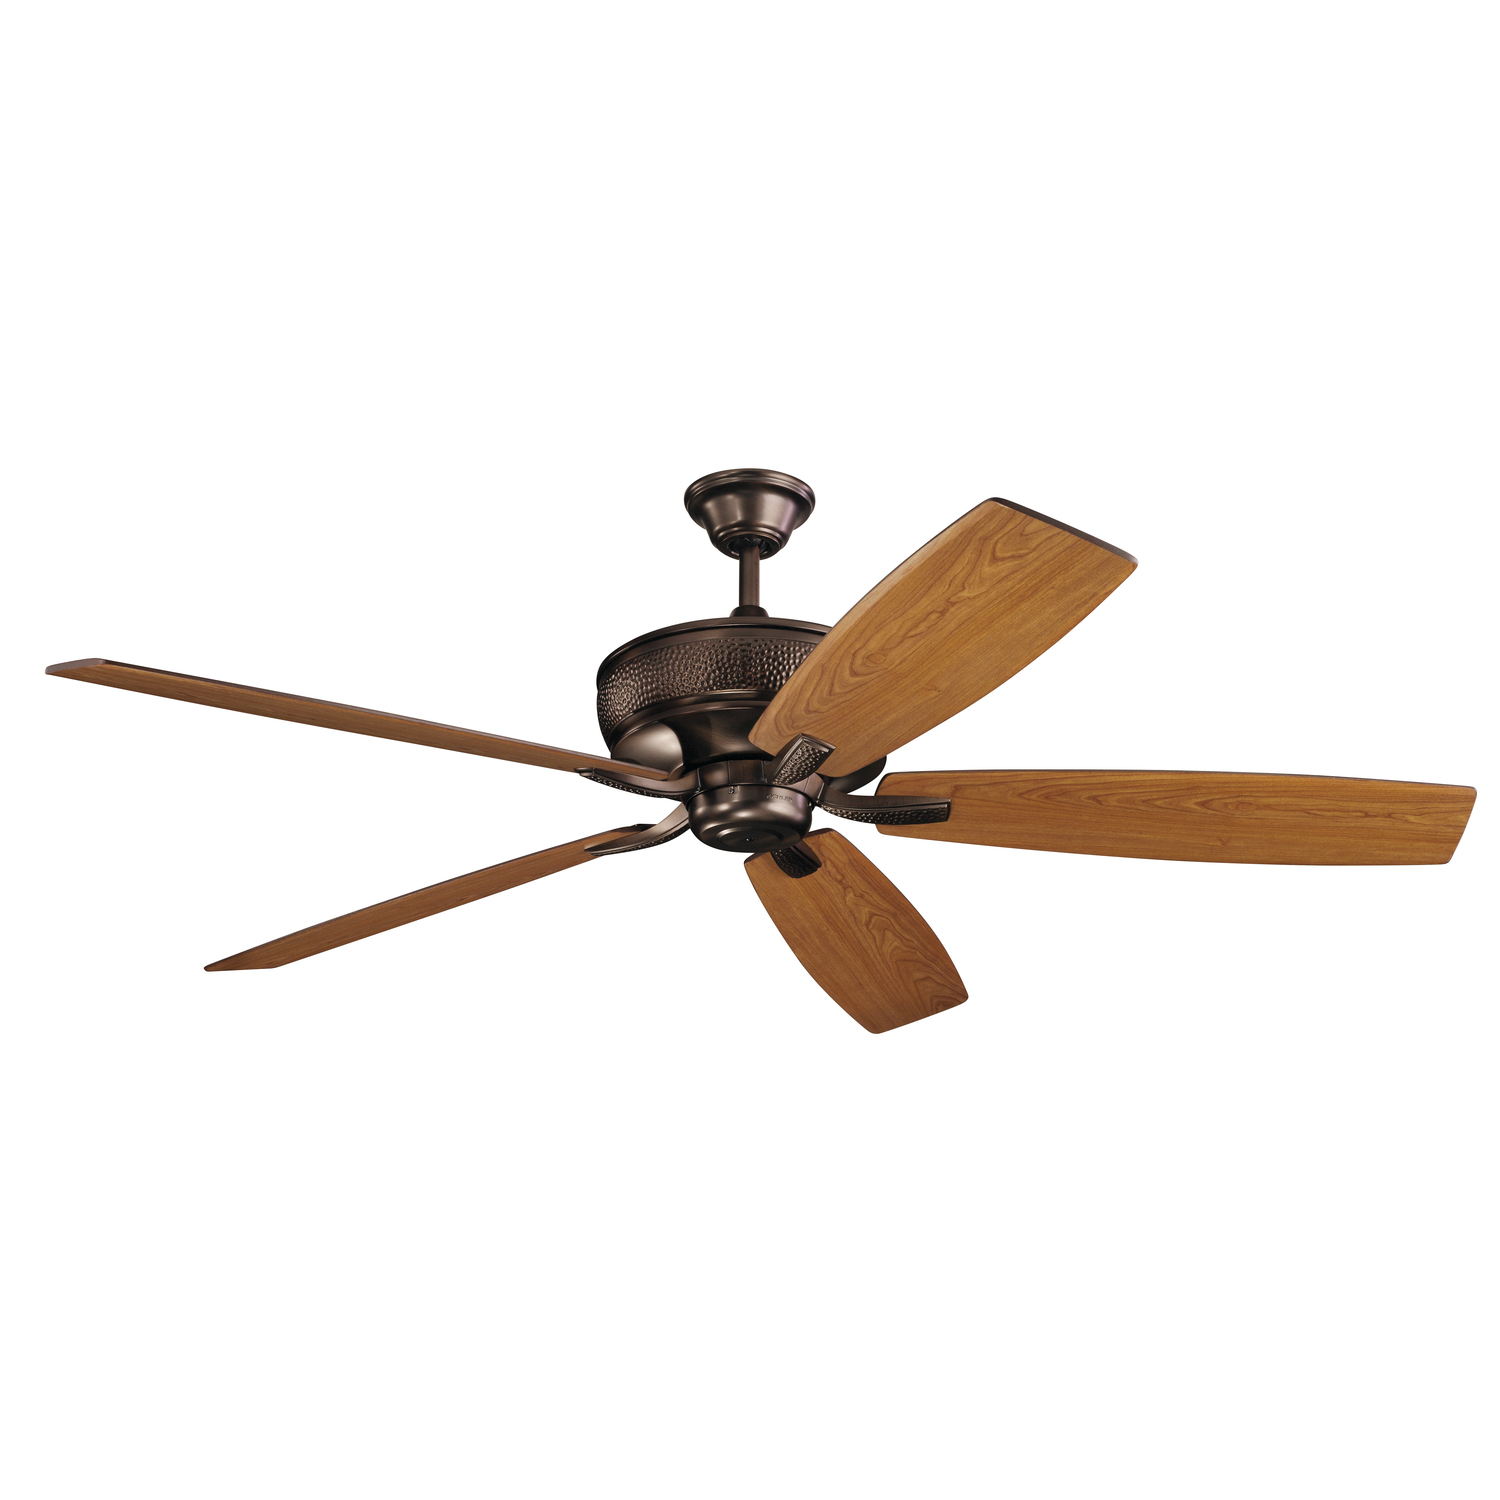 70 inchCeiling Fan from the Monarch collection by Kichler 300206OBB